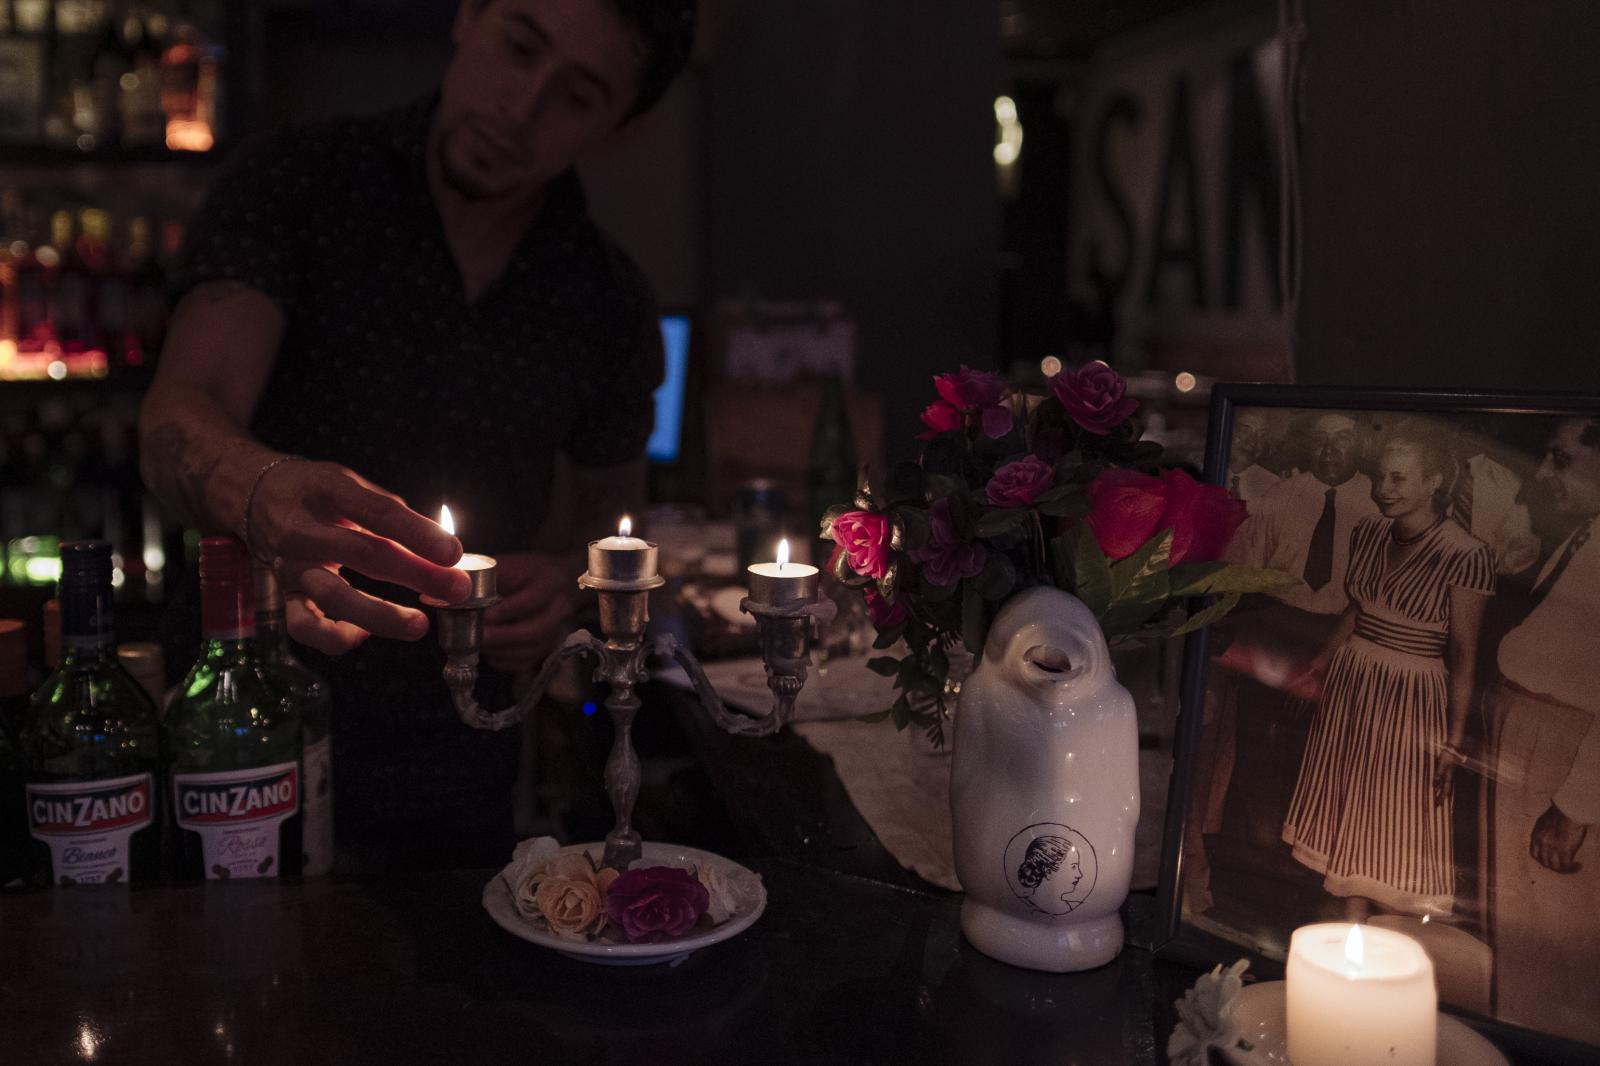 A bartender lights a candle at Santa Evita Restaurant, Buenos Aires, Argentina, on Wednesday, Dec. 4, 2019.